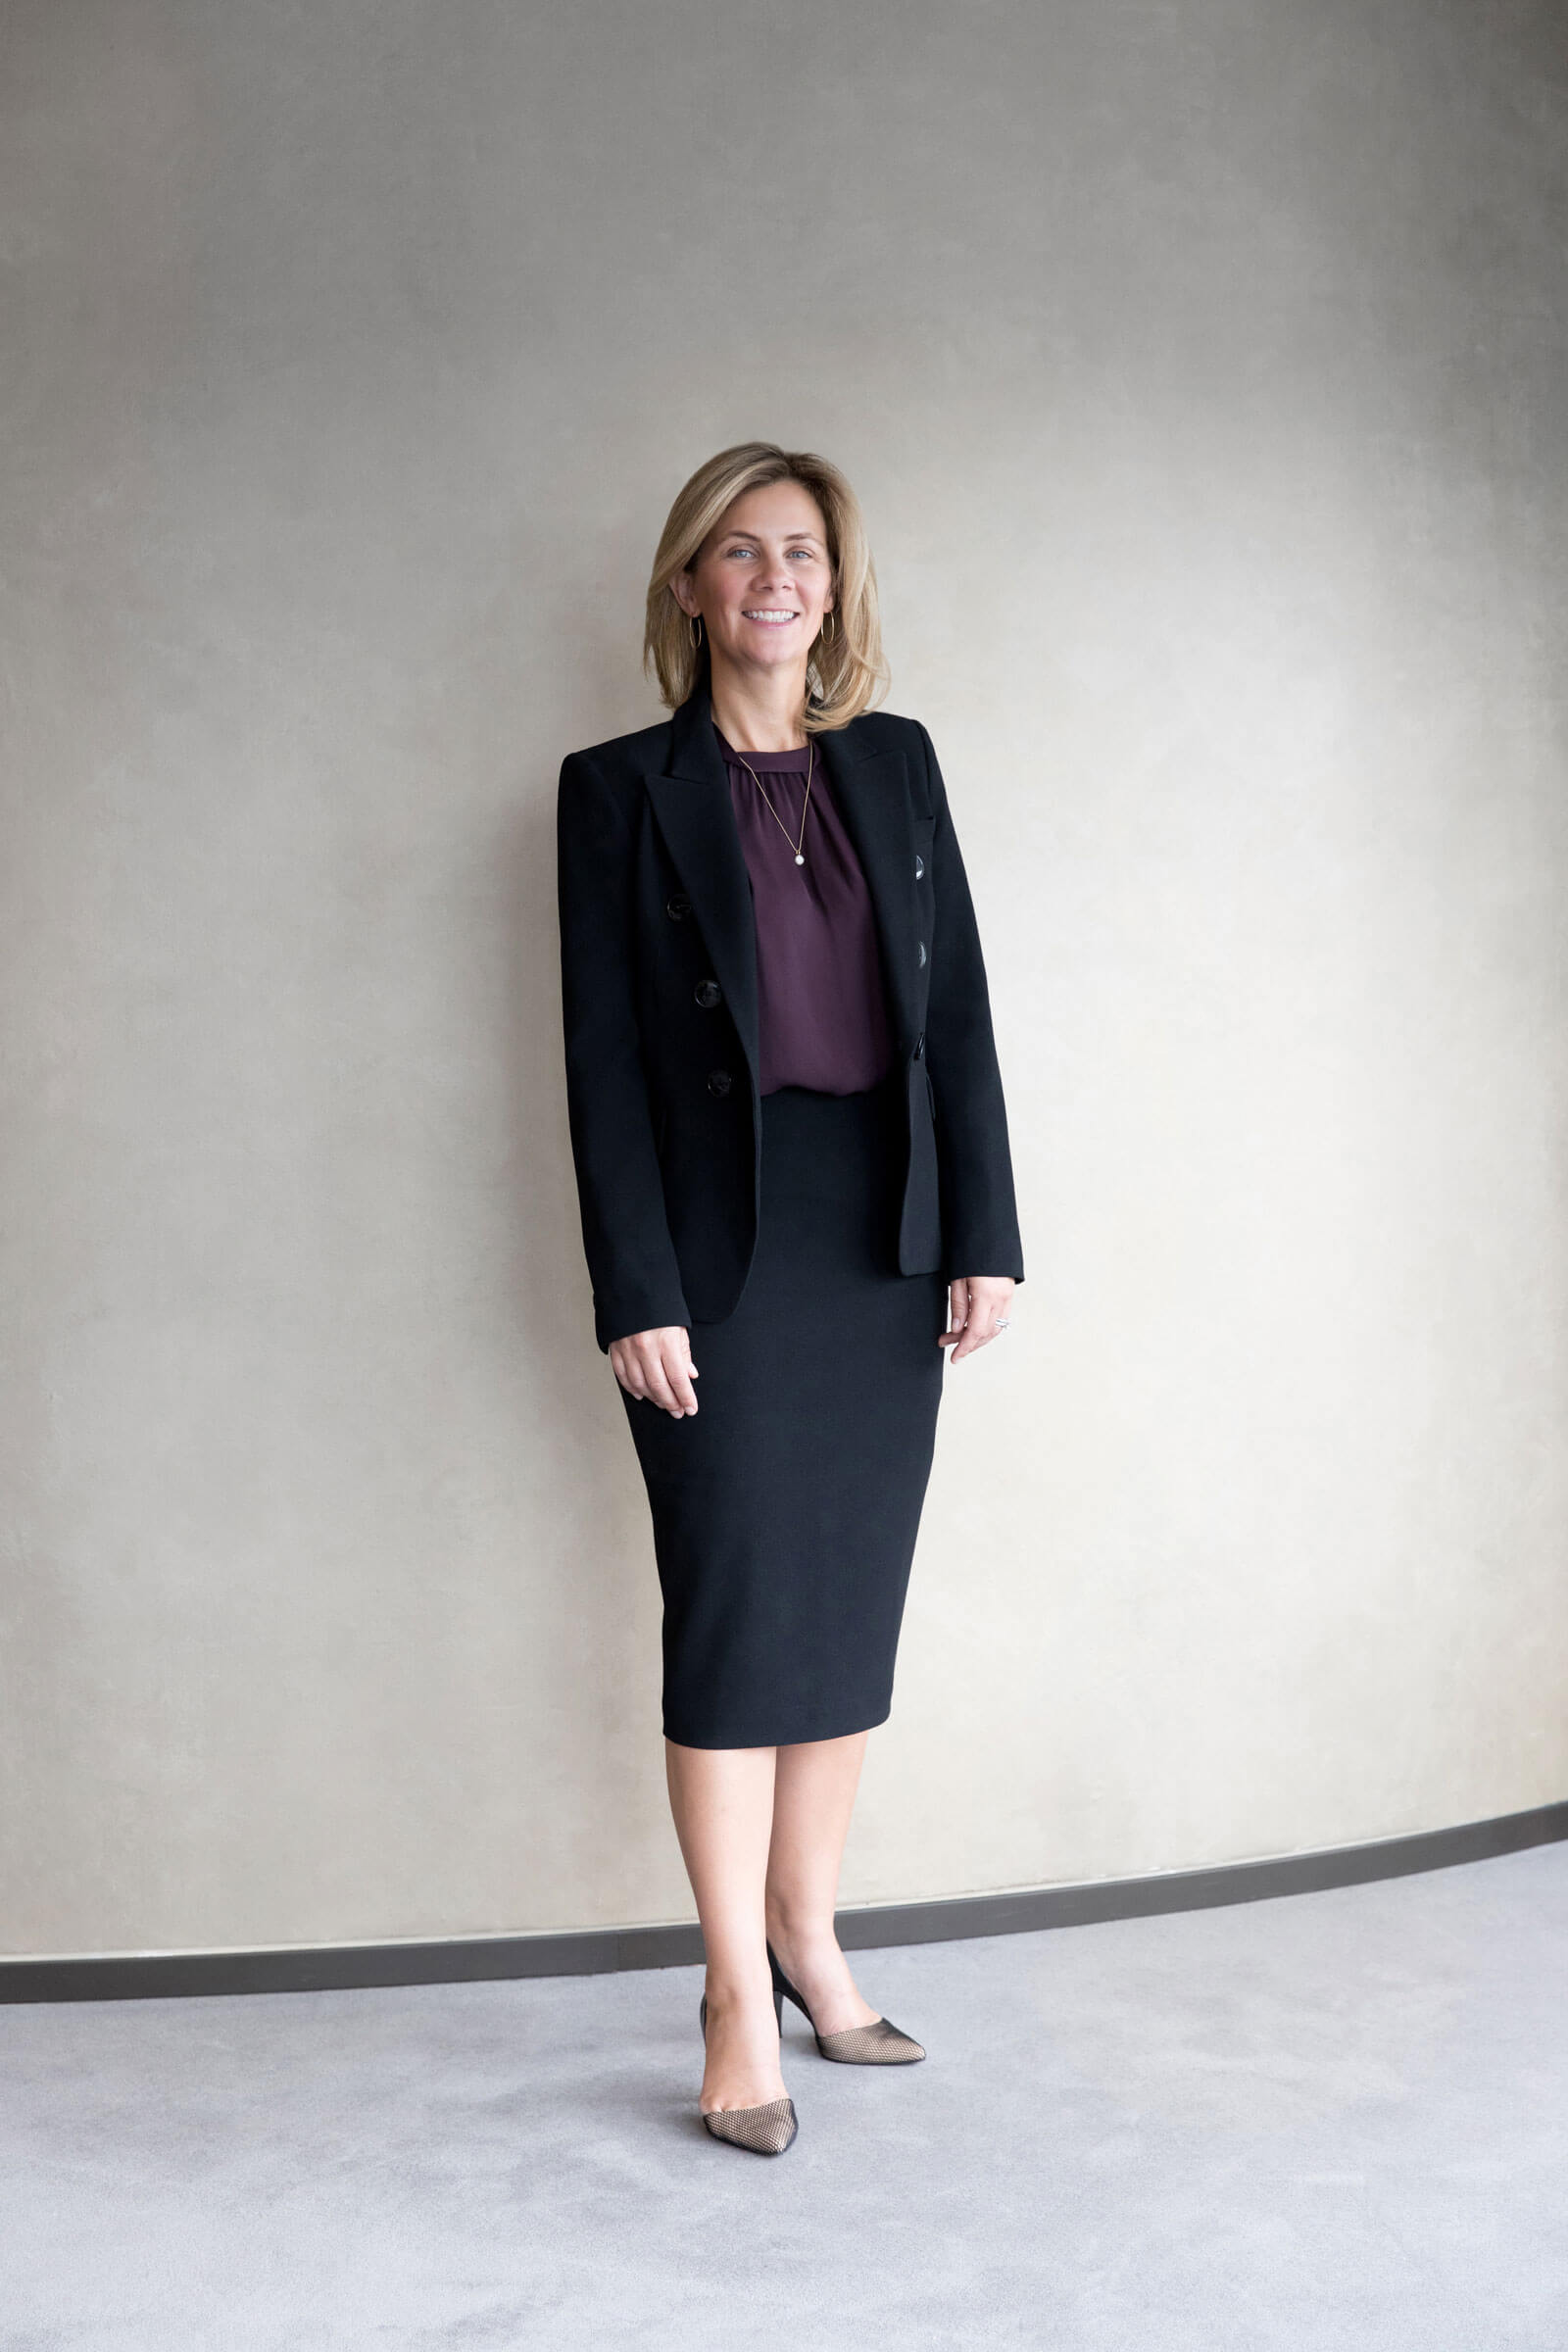 Kate Branscombe - Vice-President, 